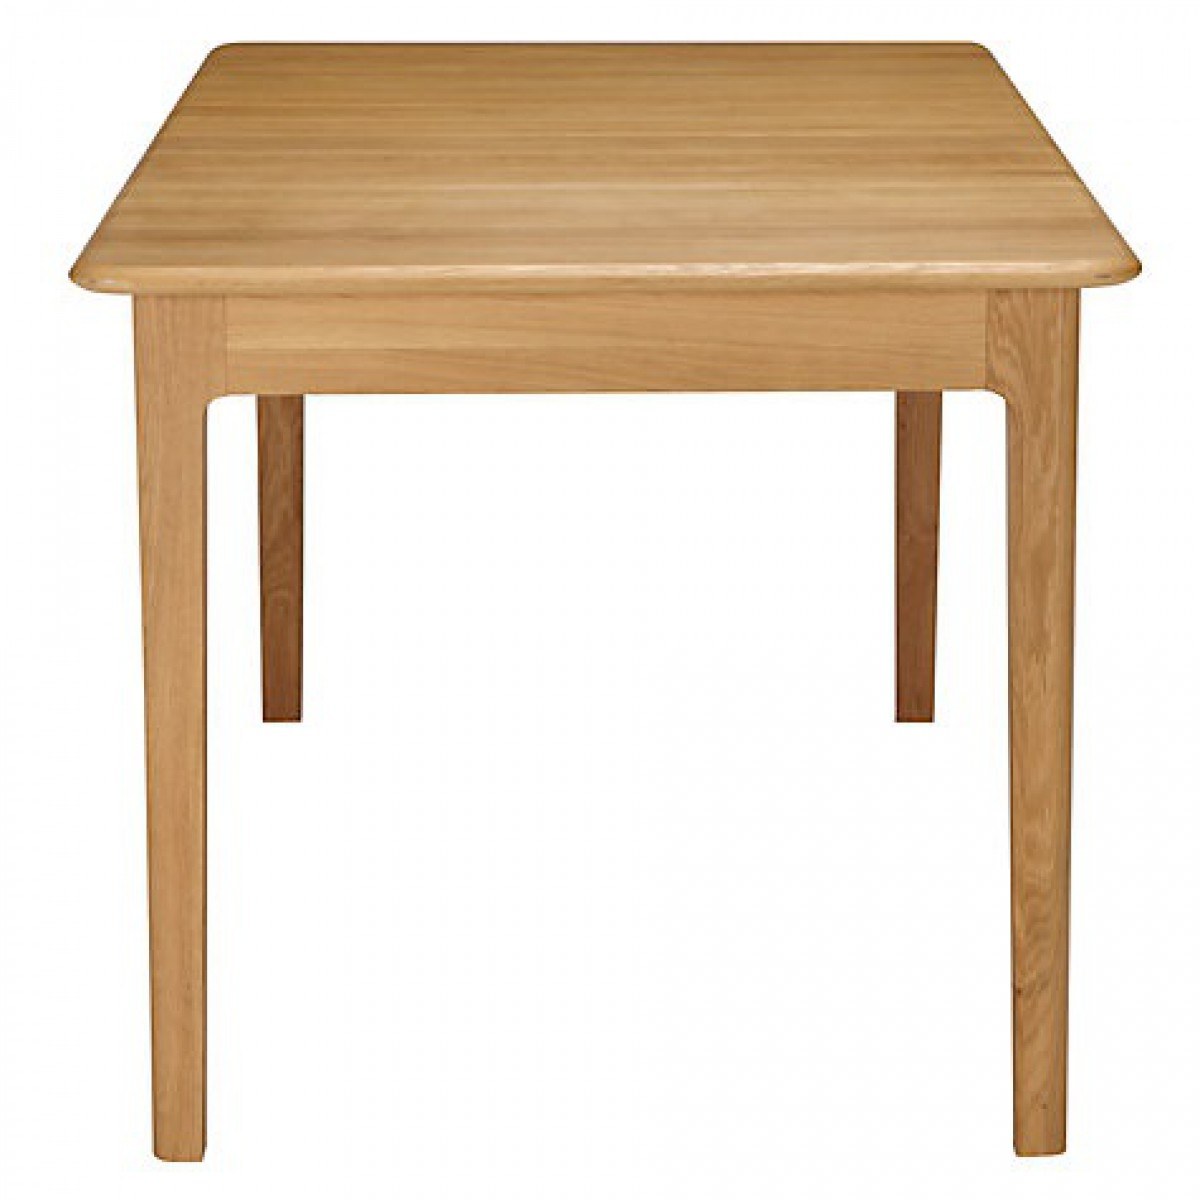 Hudson 6 12 seater extending dining table for 12 seater dining table uk